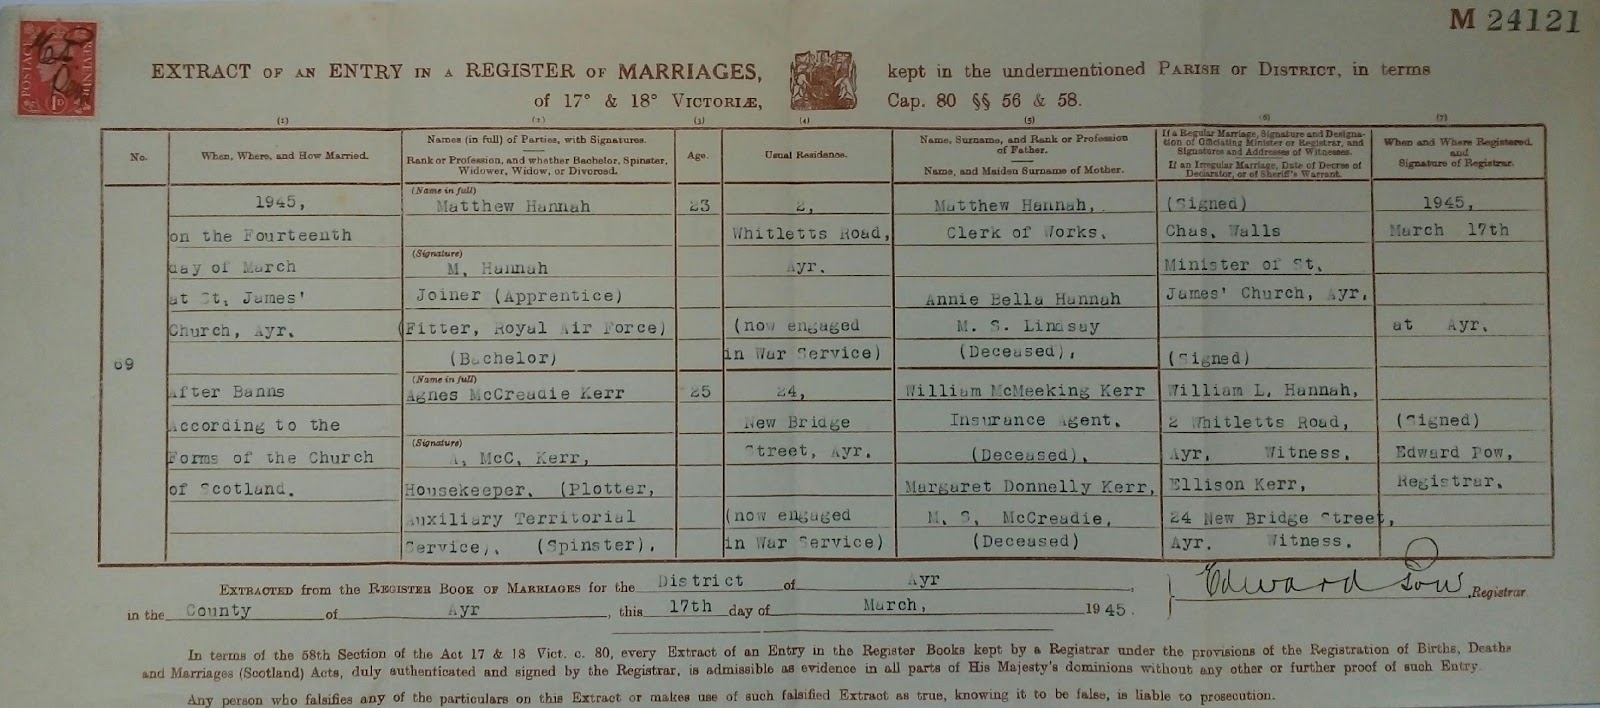 C:\Users\Main user\Pictures\Matt Hannah's Family\Hannah Certificates\Matthew Hannah and Agnes Kerr Marriage Certificate.jpg